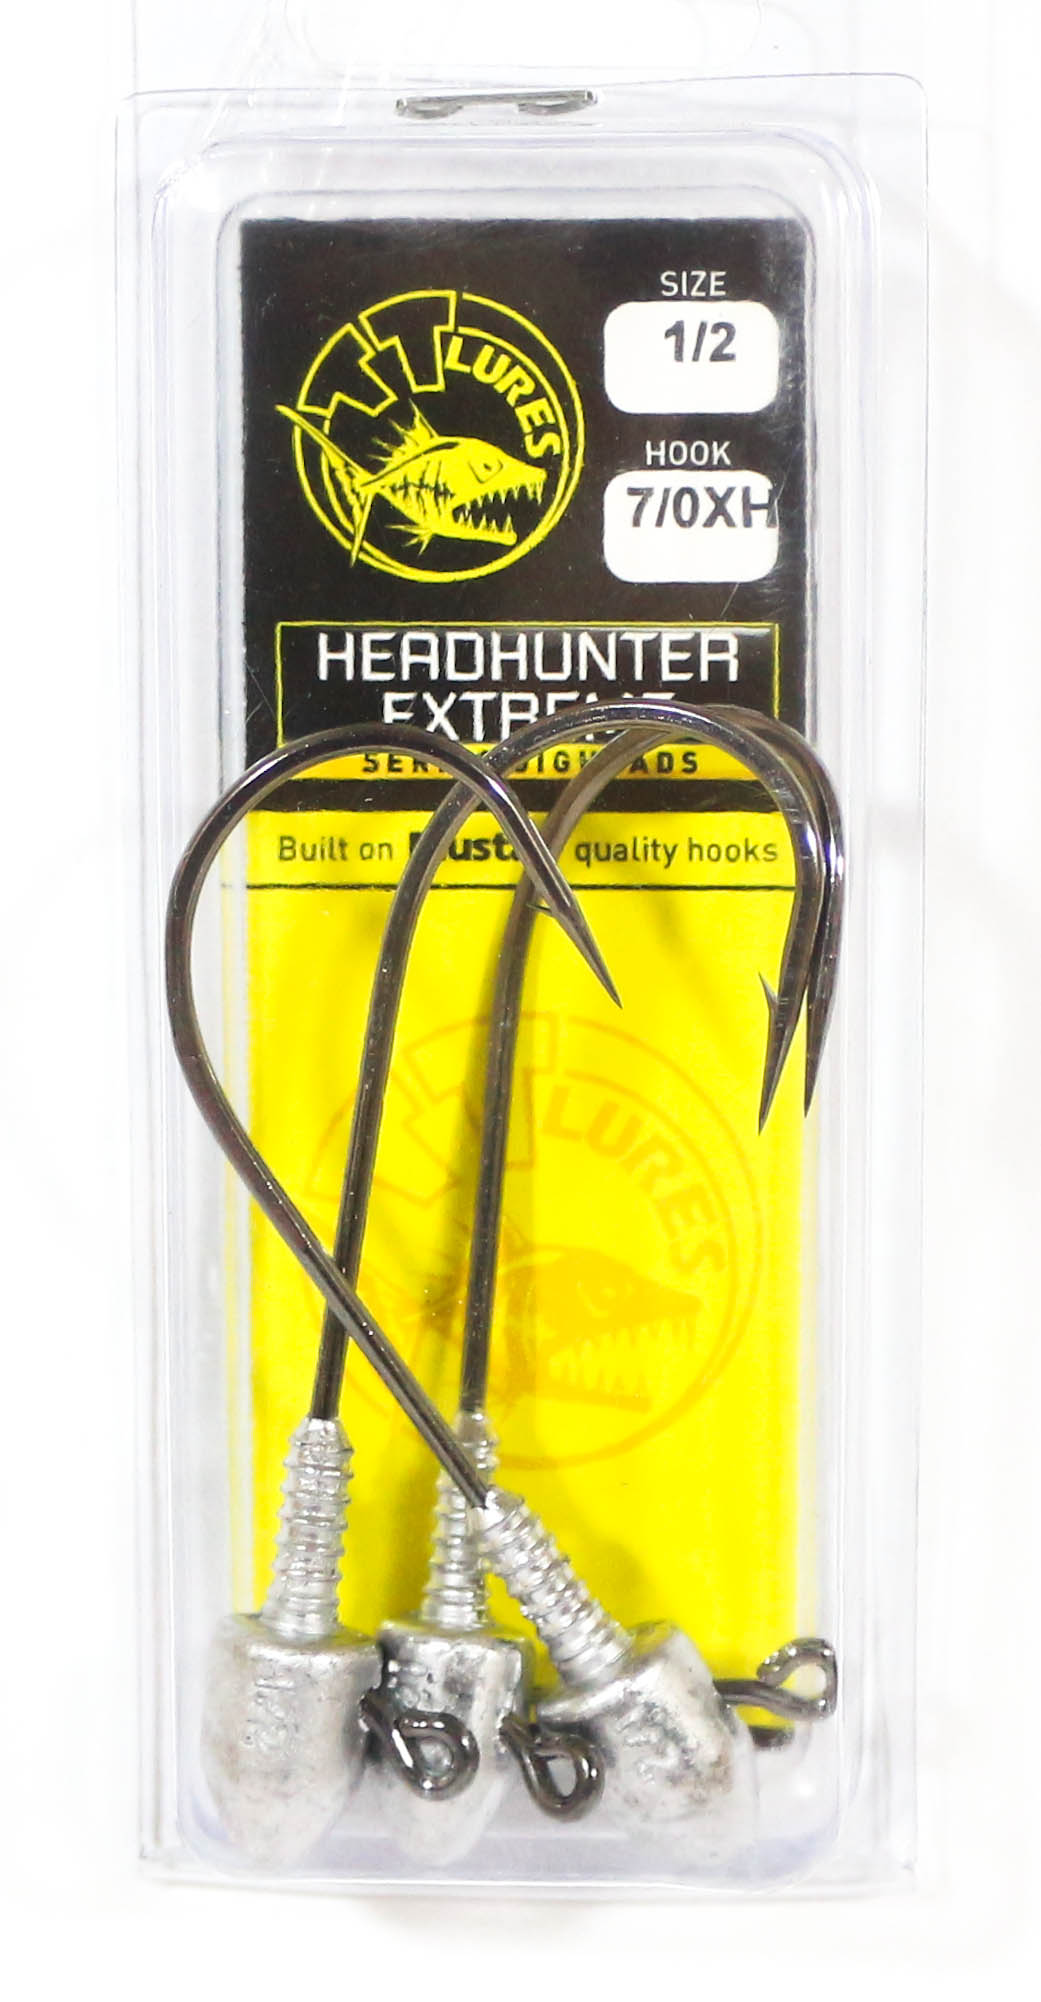 Tackle Tactics TT Head Hunter Extreme Jig Head 1/2 oz 7/0 XH 3 per pack (1883)